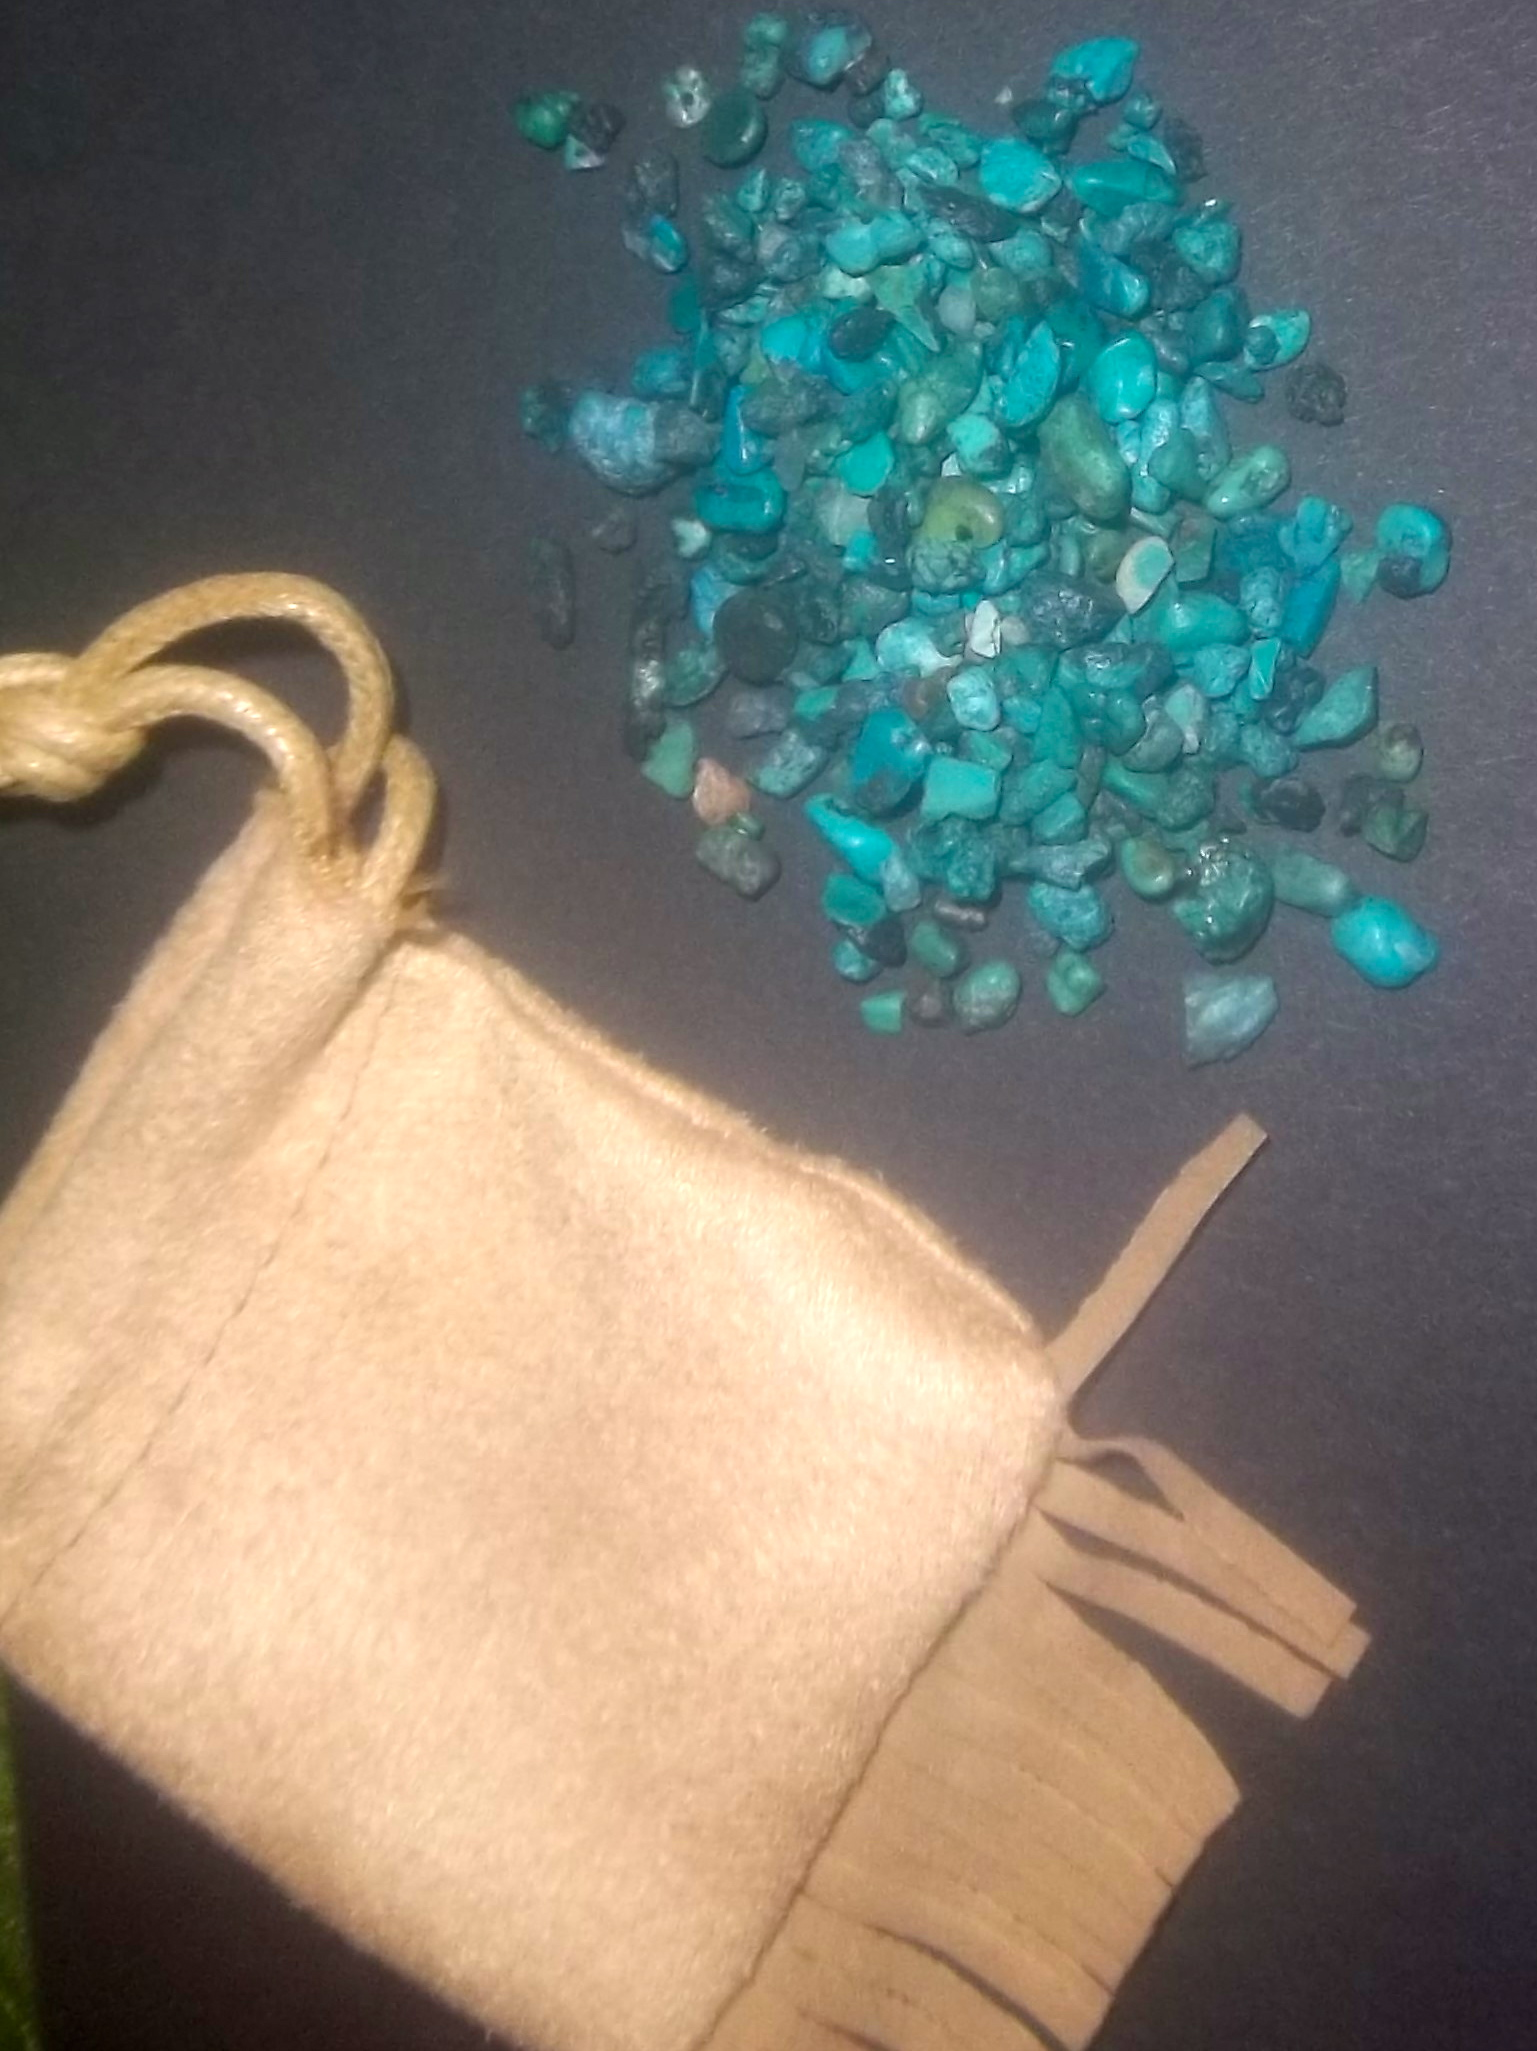 Royal Turquoise - One oz. in Pouch